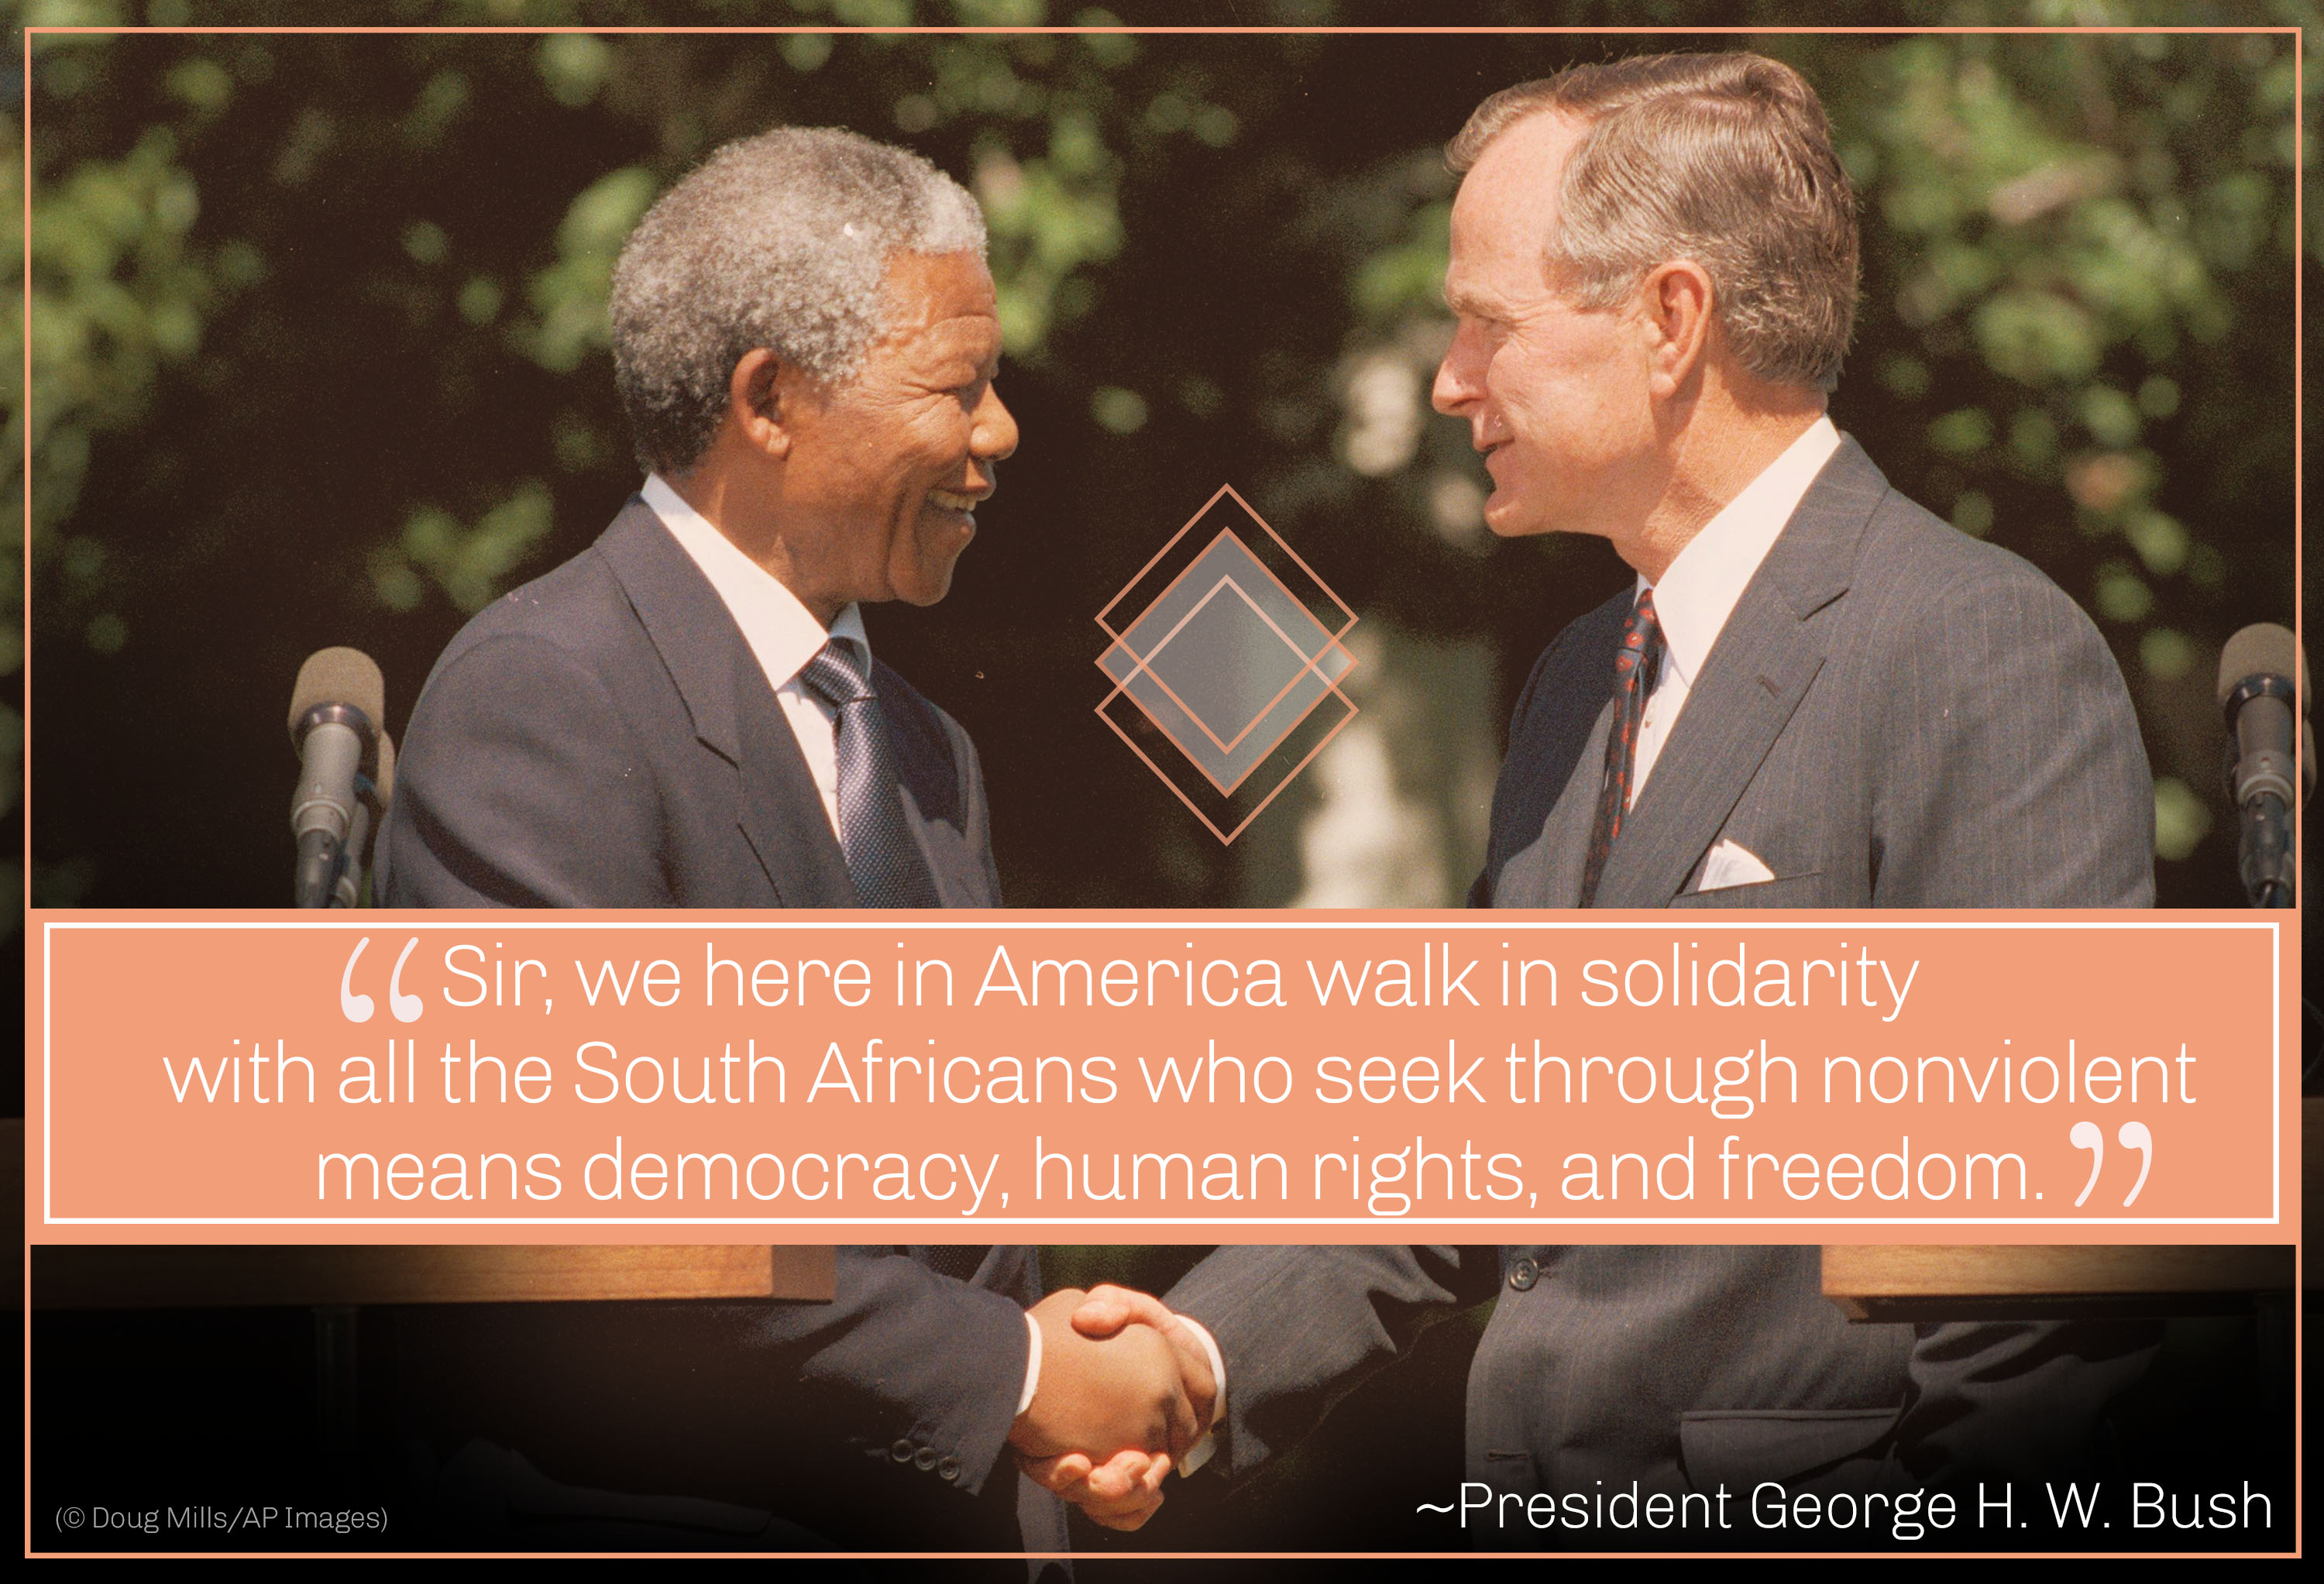 Photo of Mandela and President George H.W. Bush shaking hands, Bush quote about walking in solidarity (© Doug Mills/AP Images)